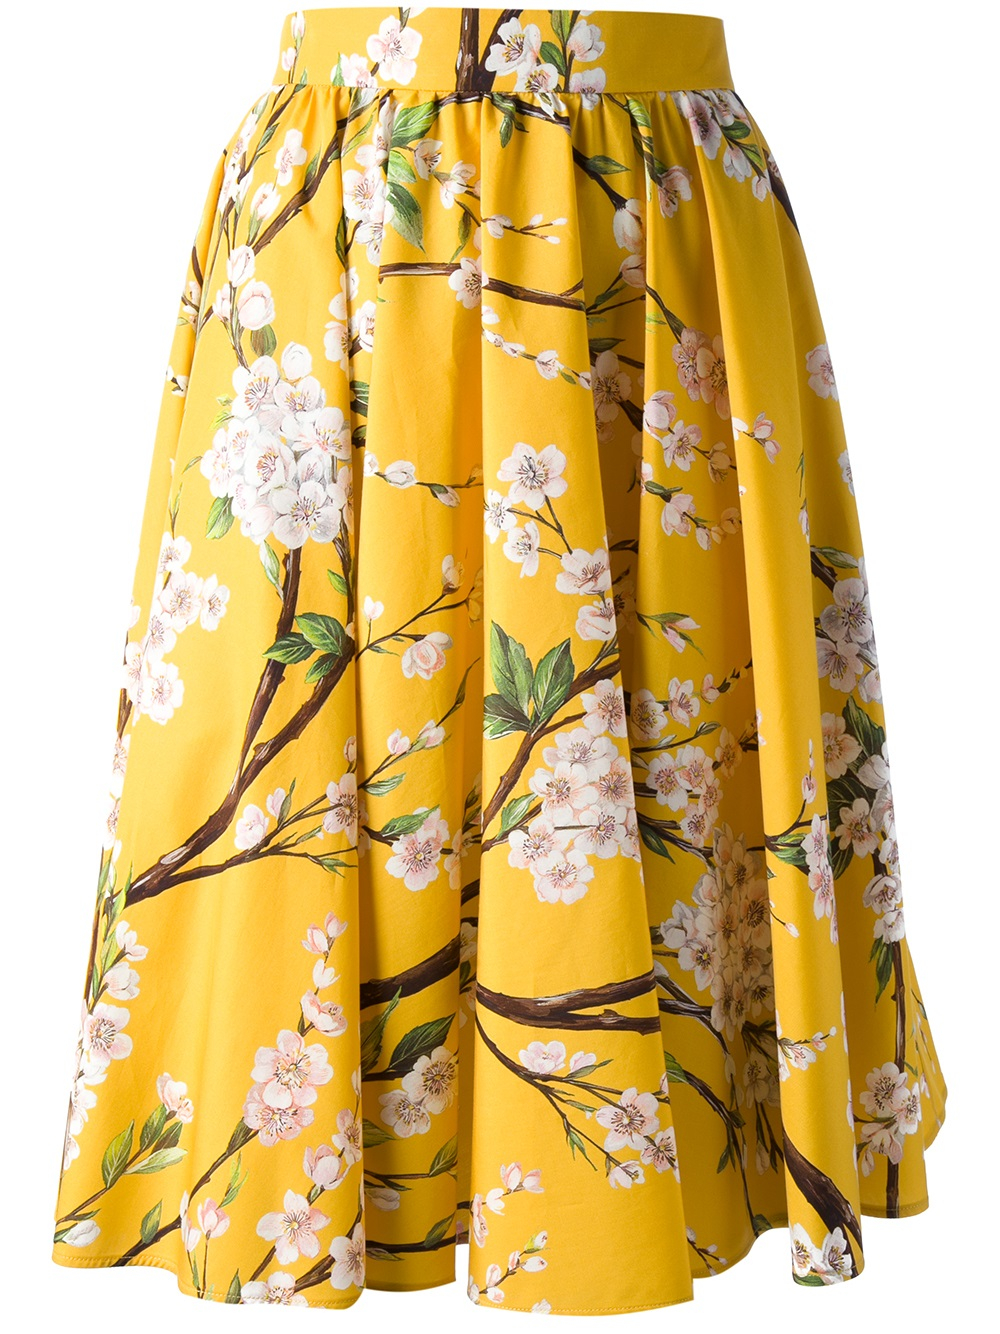 Dolce & Gabbana Pleated Floral Skirt in Yellow - Lyst